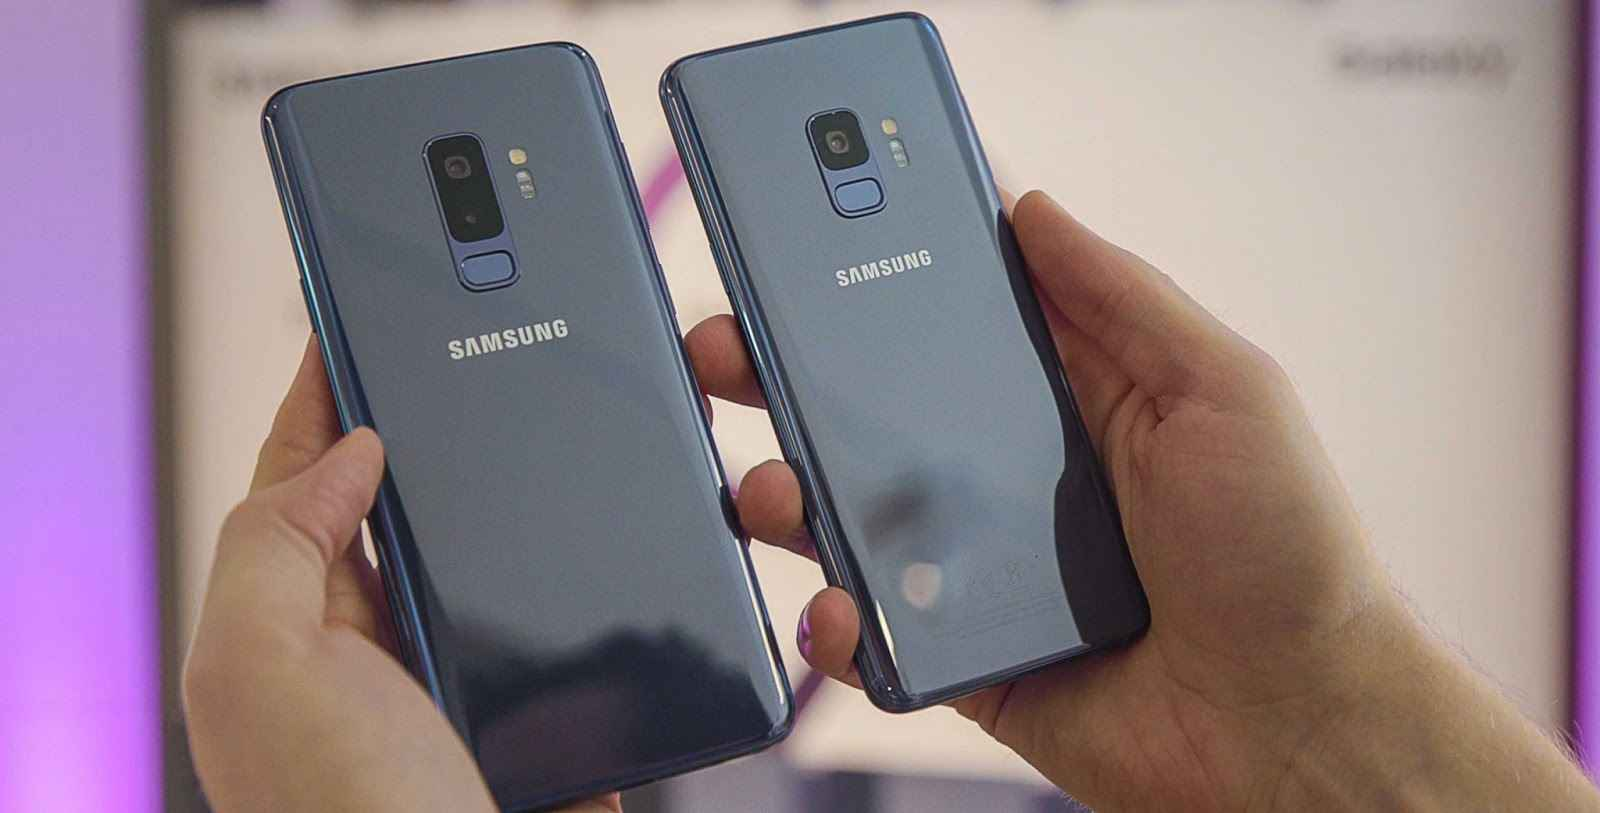 Best Android Gaming Phones For 2018 - The Samsung Galaxy S9 and S9 Plus